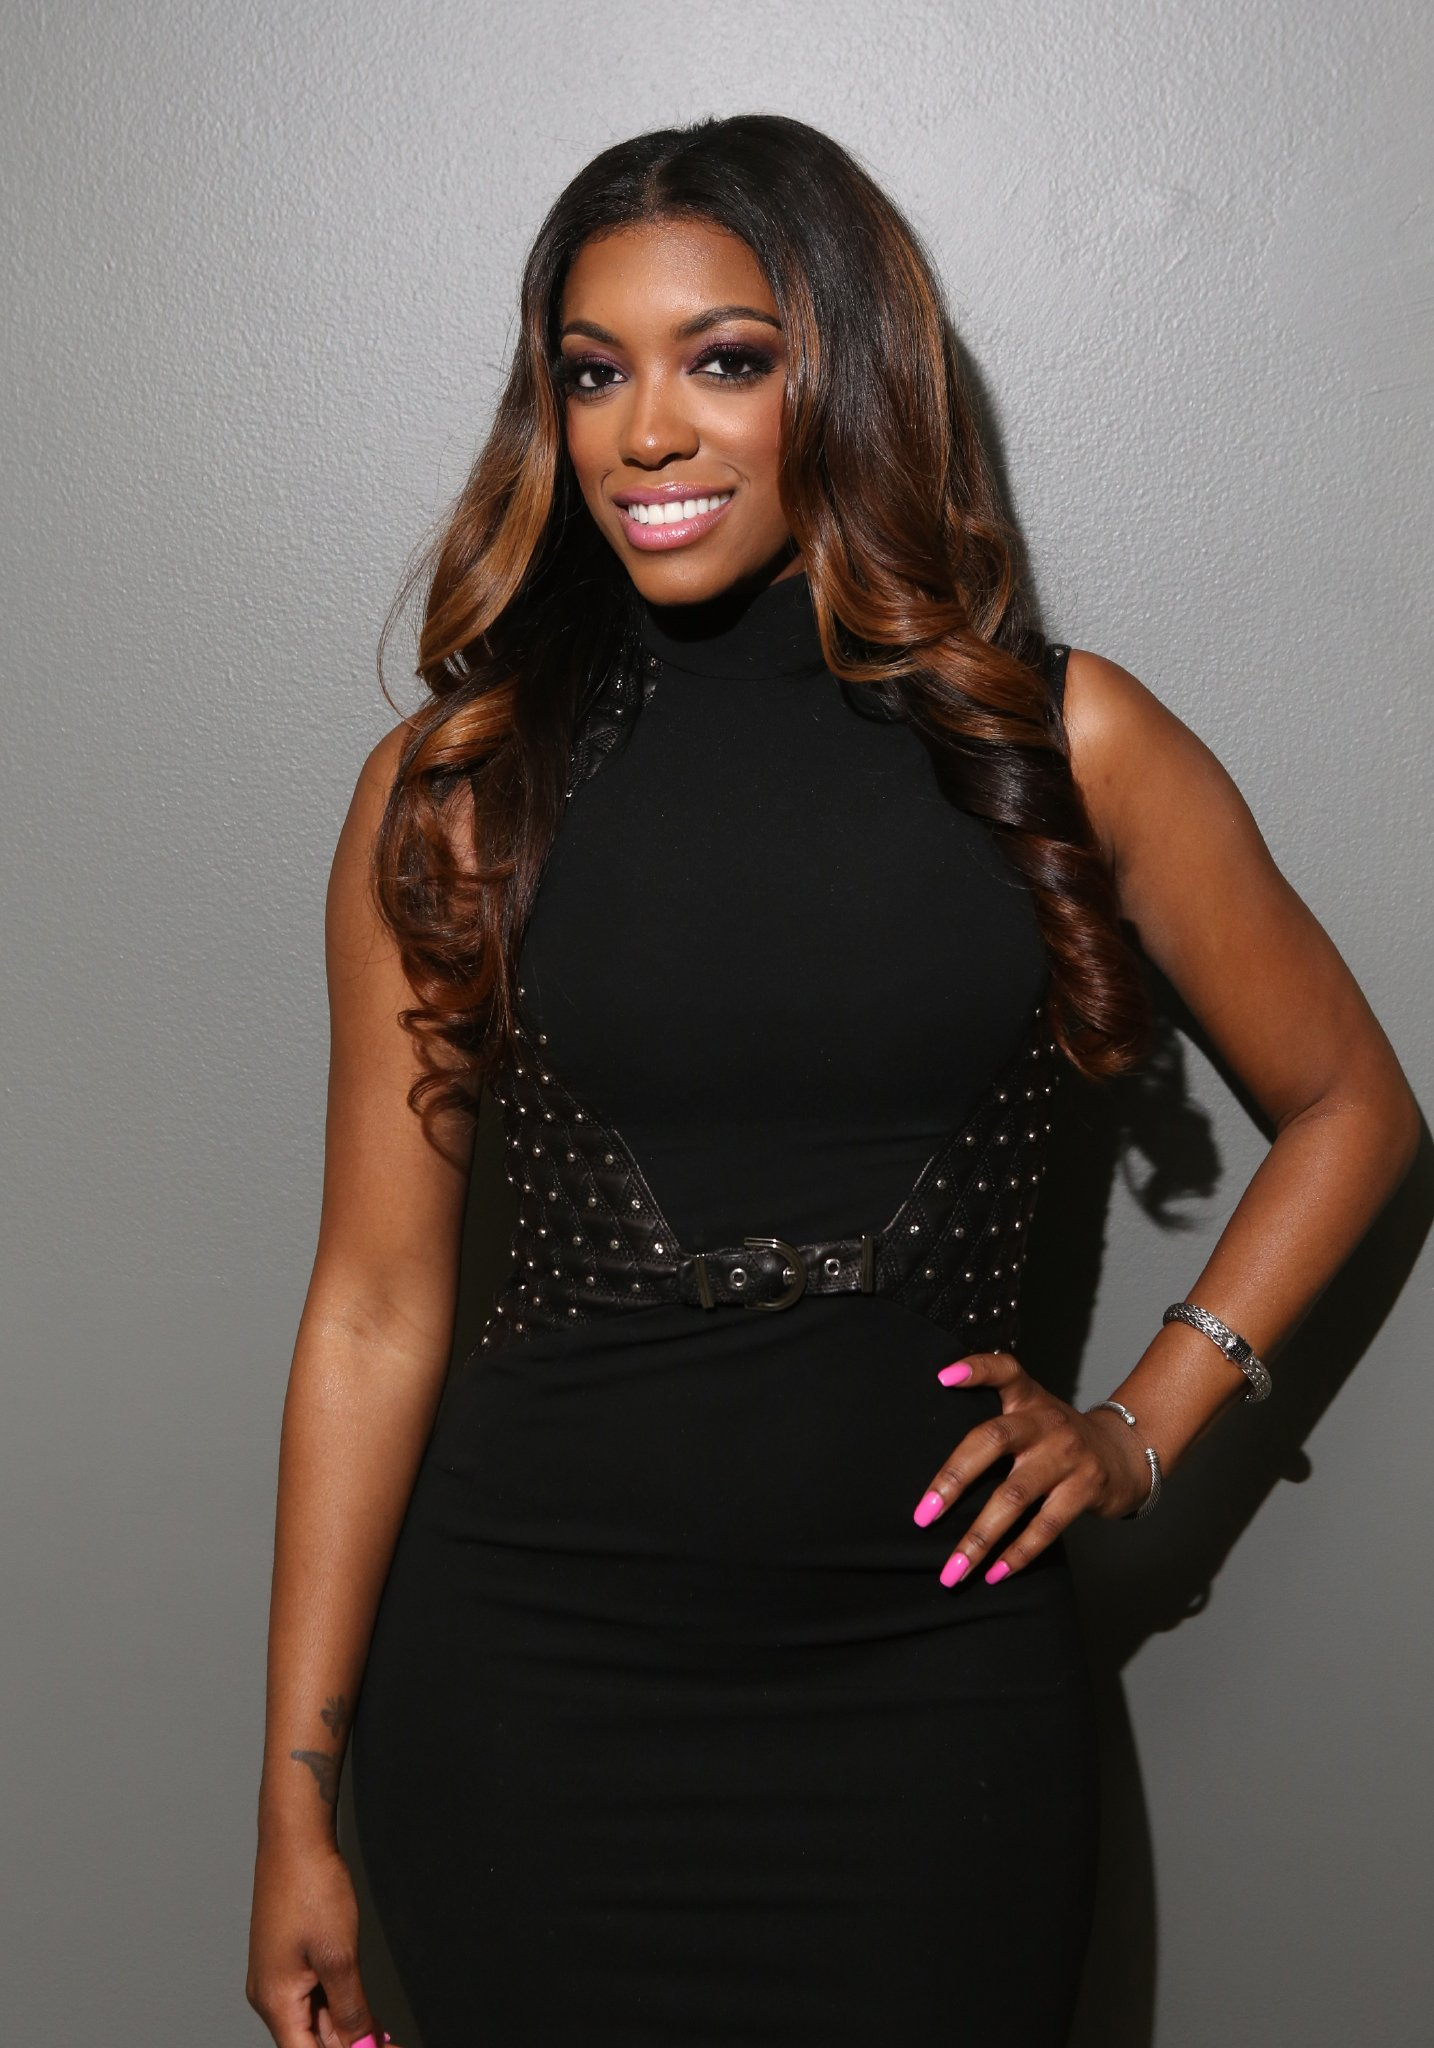 TV personality Porsha Williams visits 106 & Park at BET studio on June 9, 2014 | Photo: Getty Images